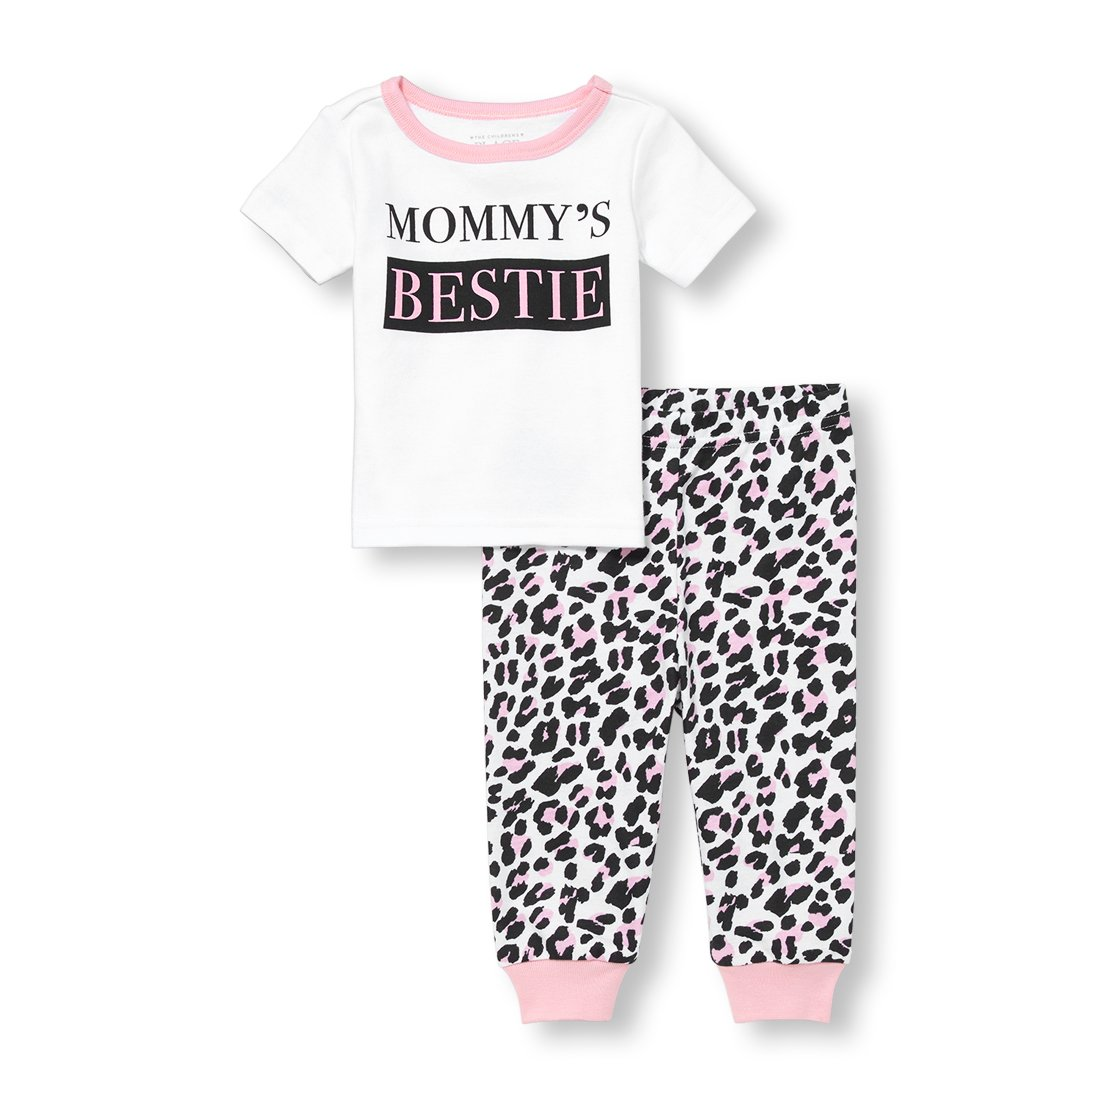 The Children's Place Baby Girls 2 Piece Short Sleeve Pajama Set The Children's Place